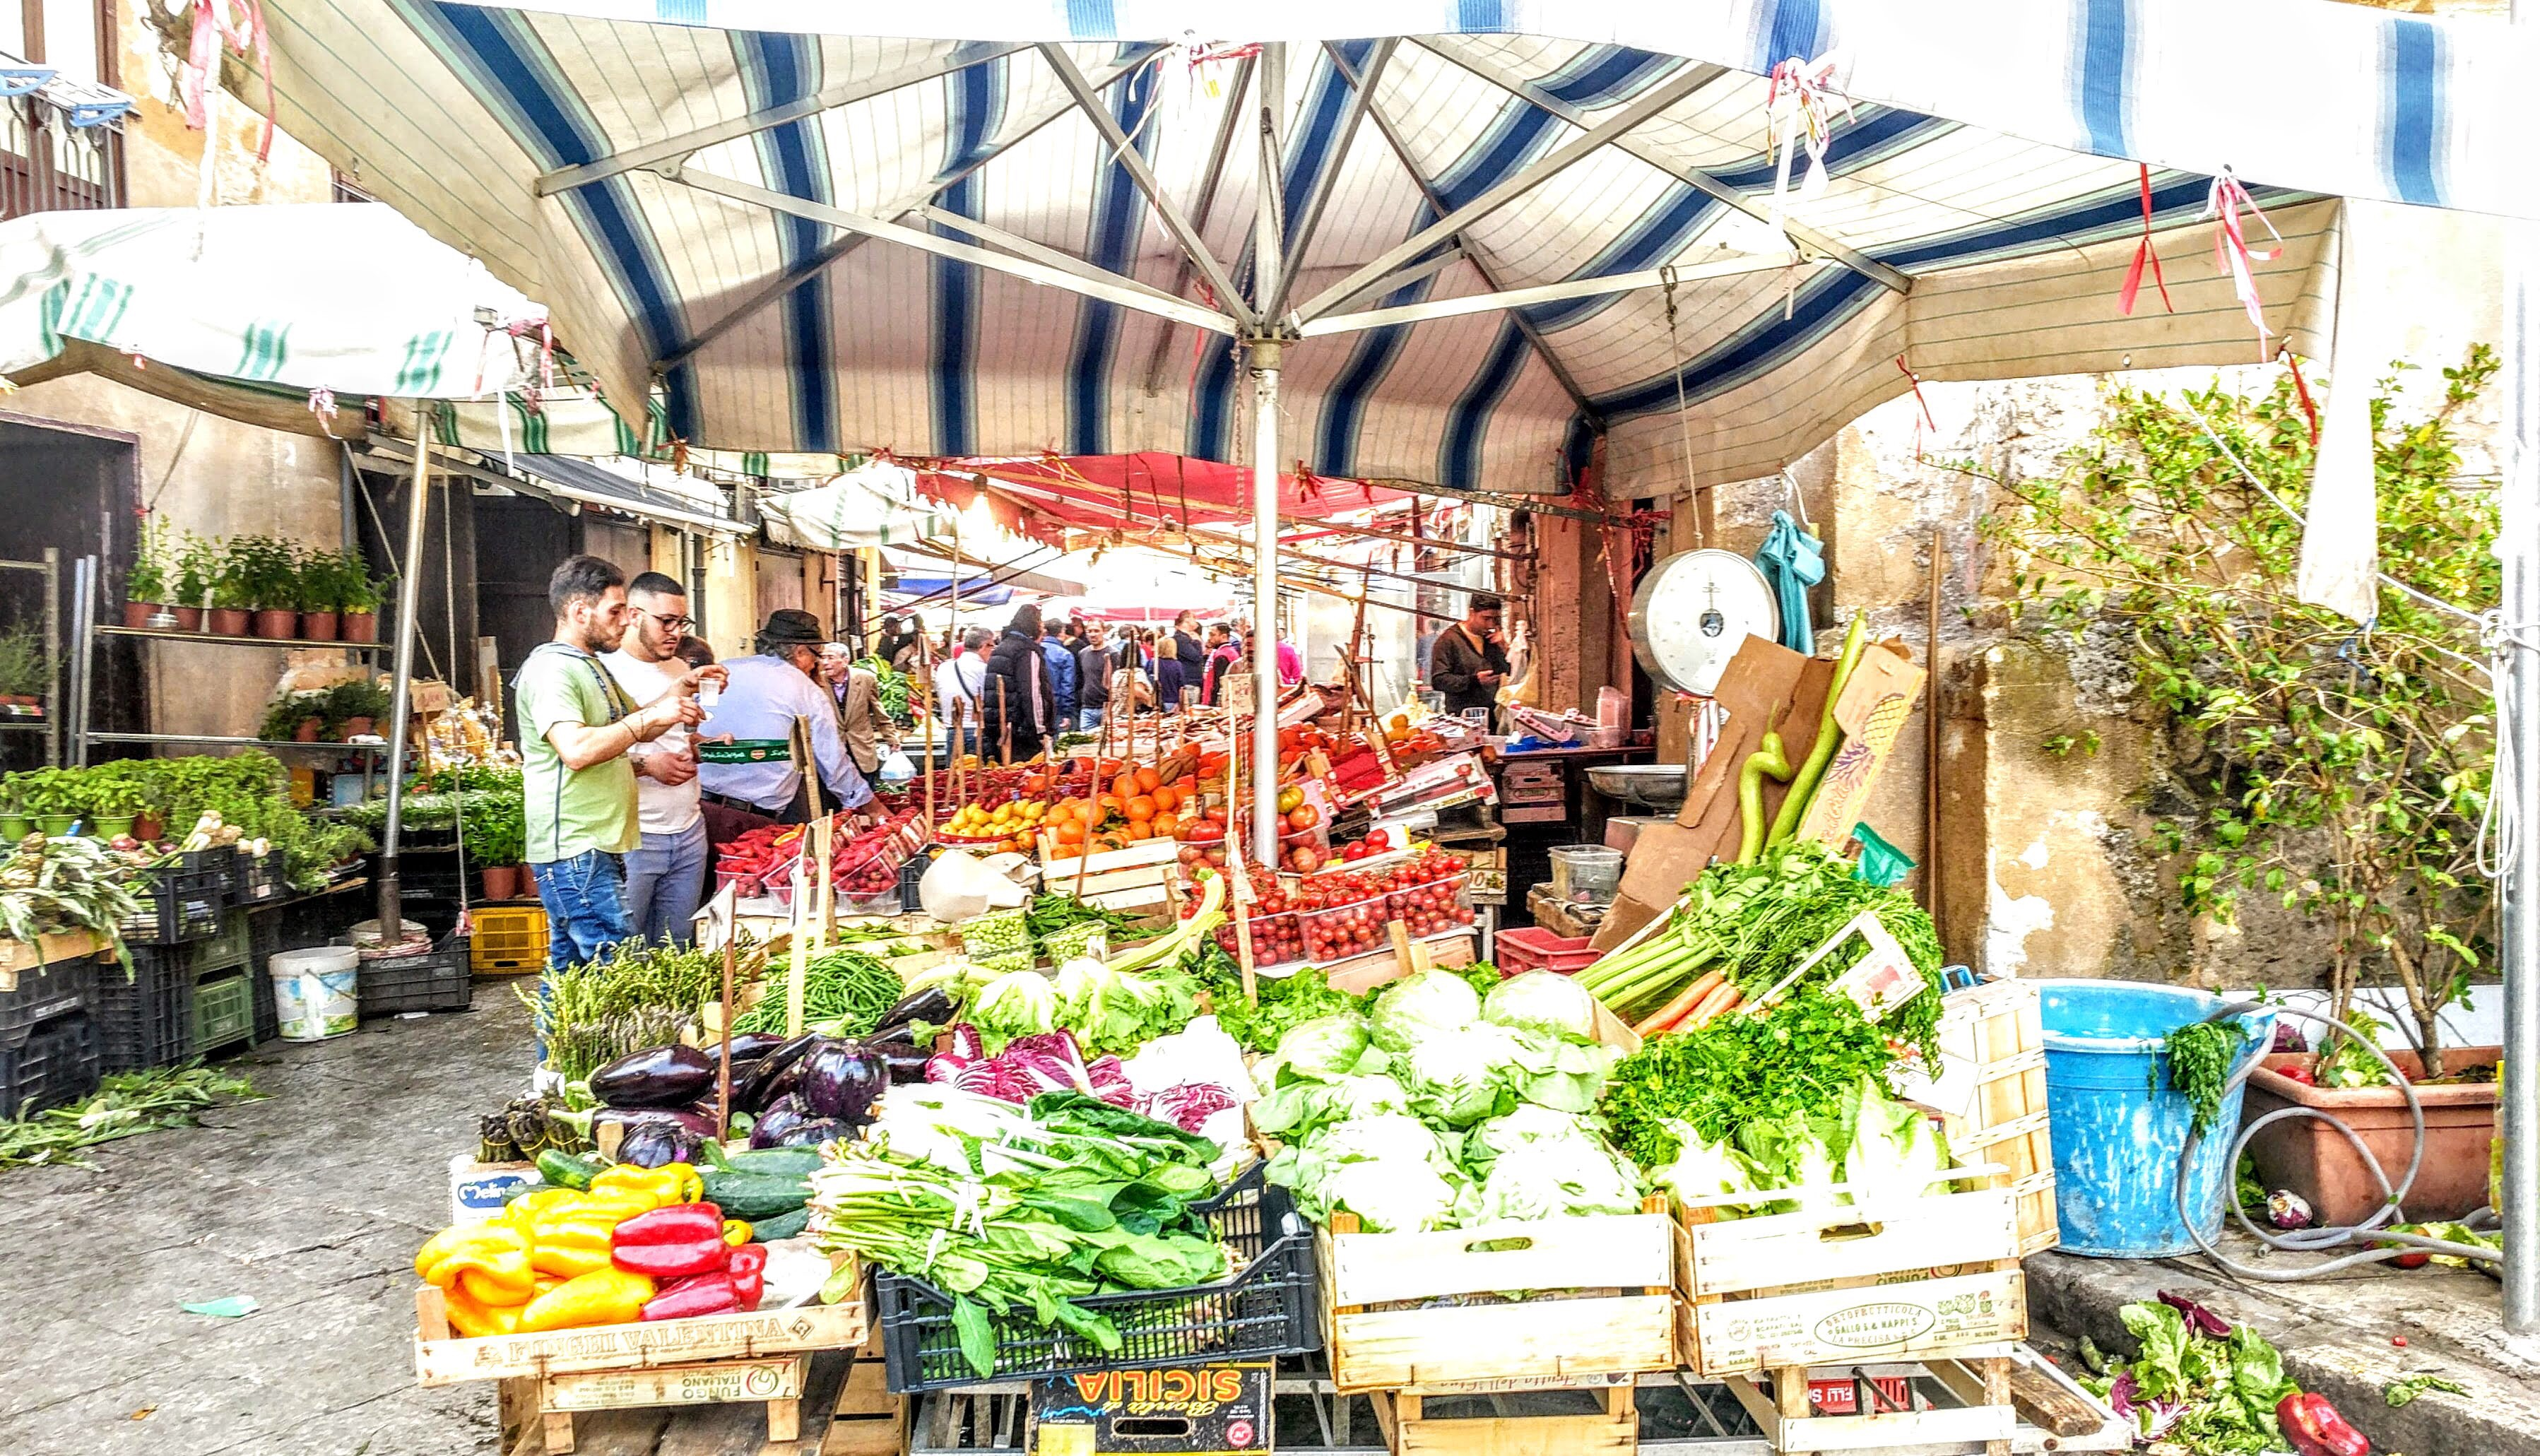 Capo Market, Palermo - a colourful selection of fruit and vegetables